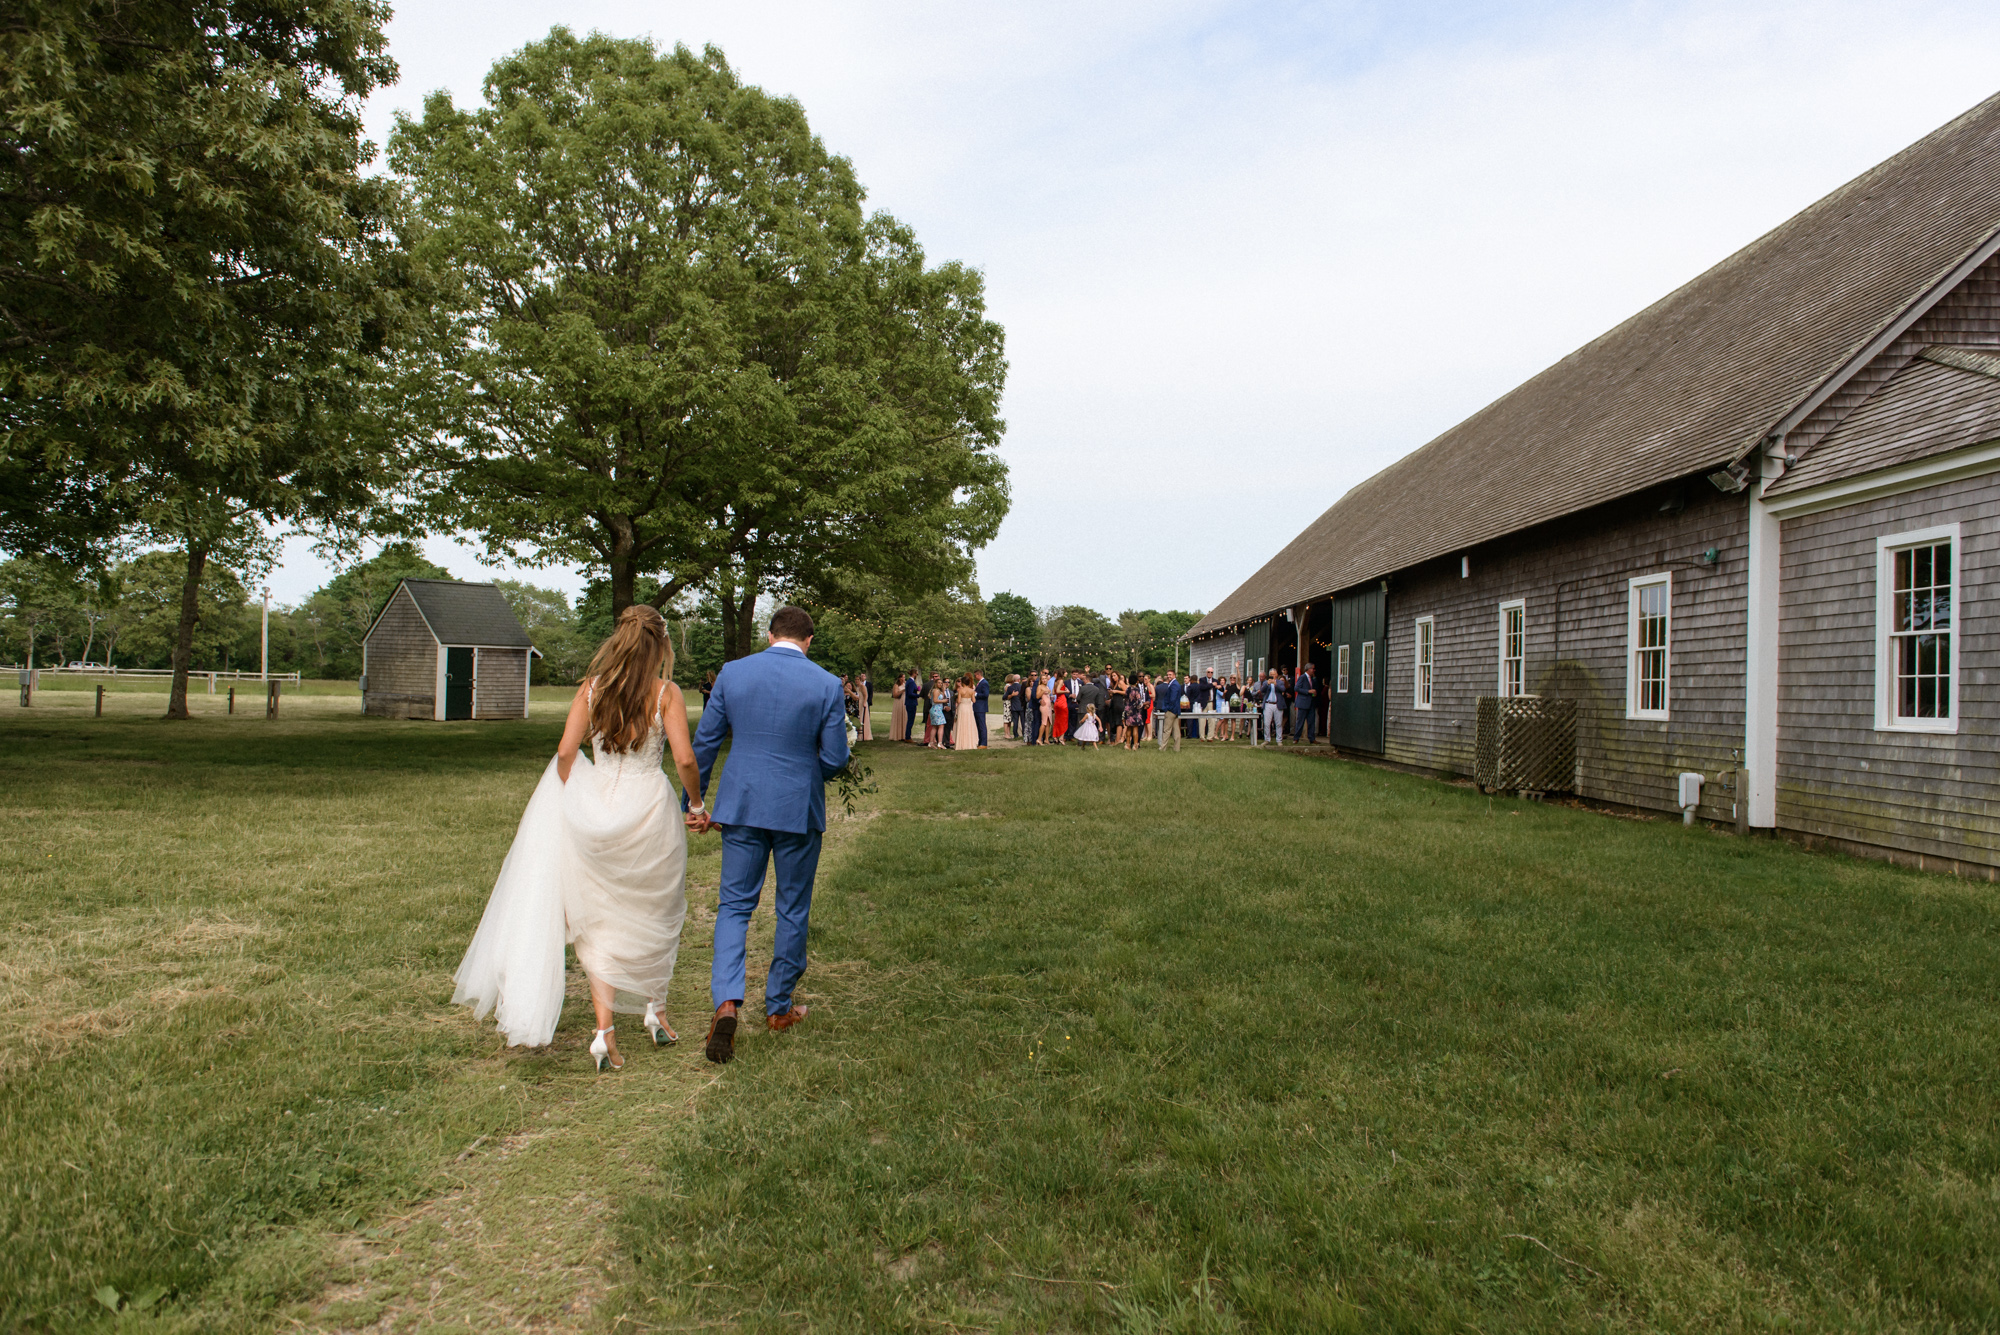 A bride and groom walking at the Martha's Vineyard Agricultural Hall in West Tisbury photo by David Welch Photography